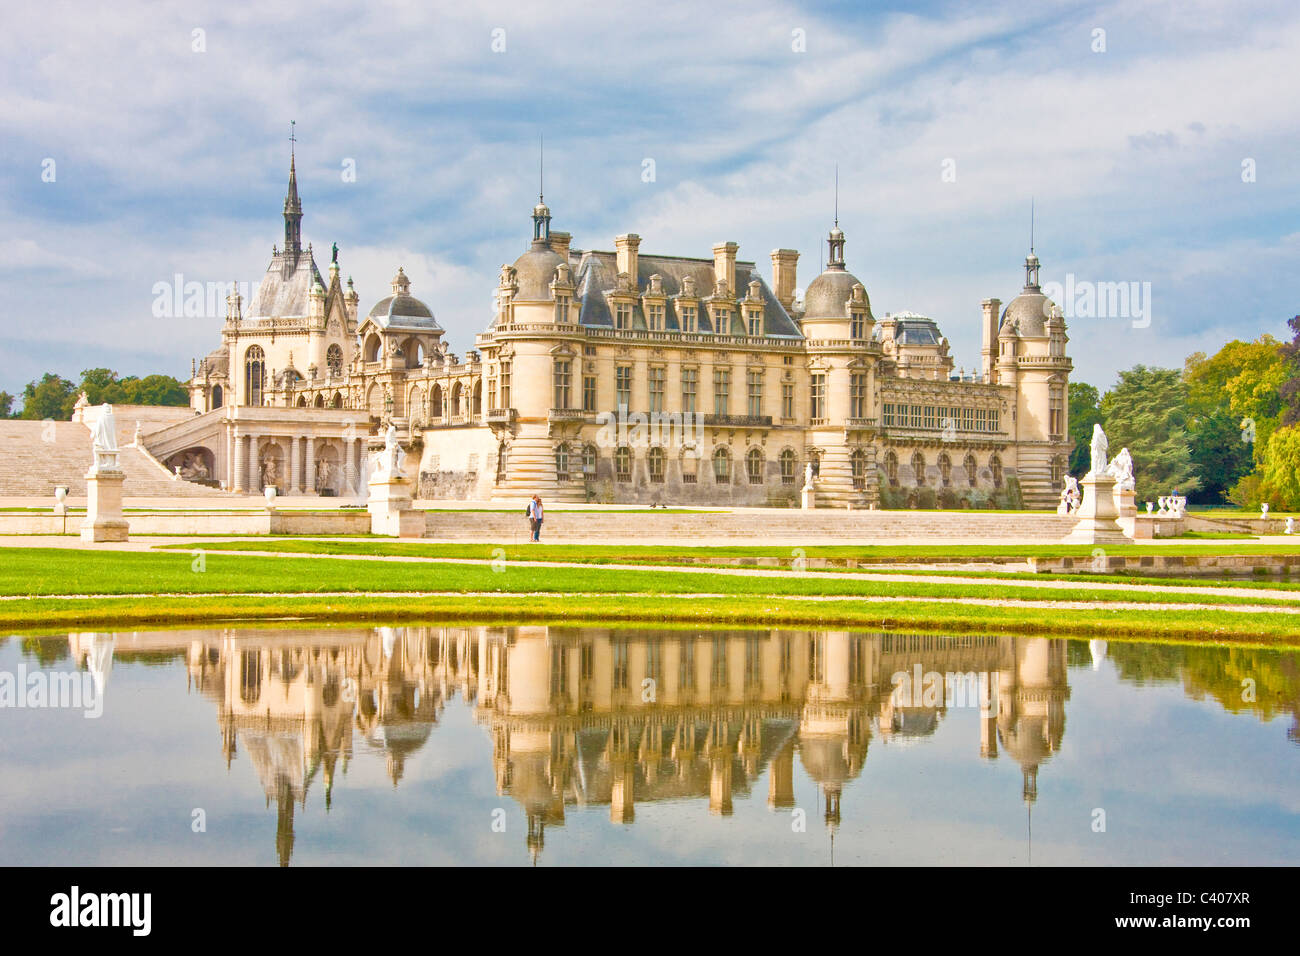 France, Europe, Villandry, Picardy, castle, world cultural heritage, water, reflection, park, - Stock Image